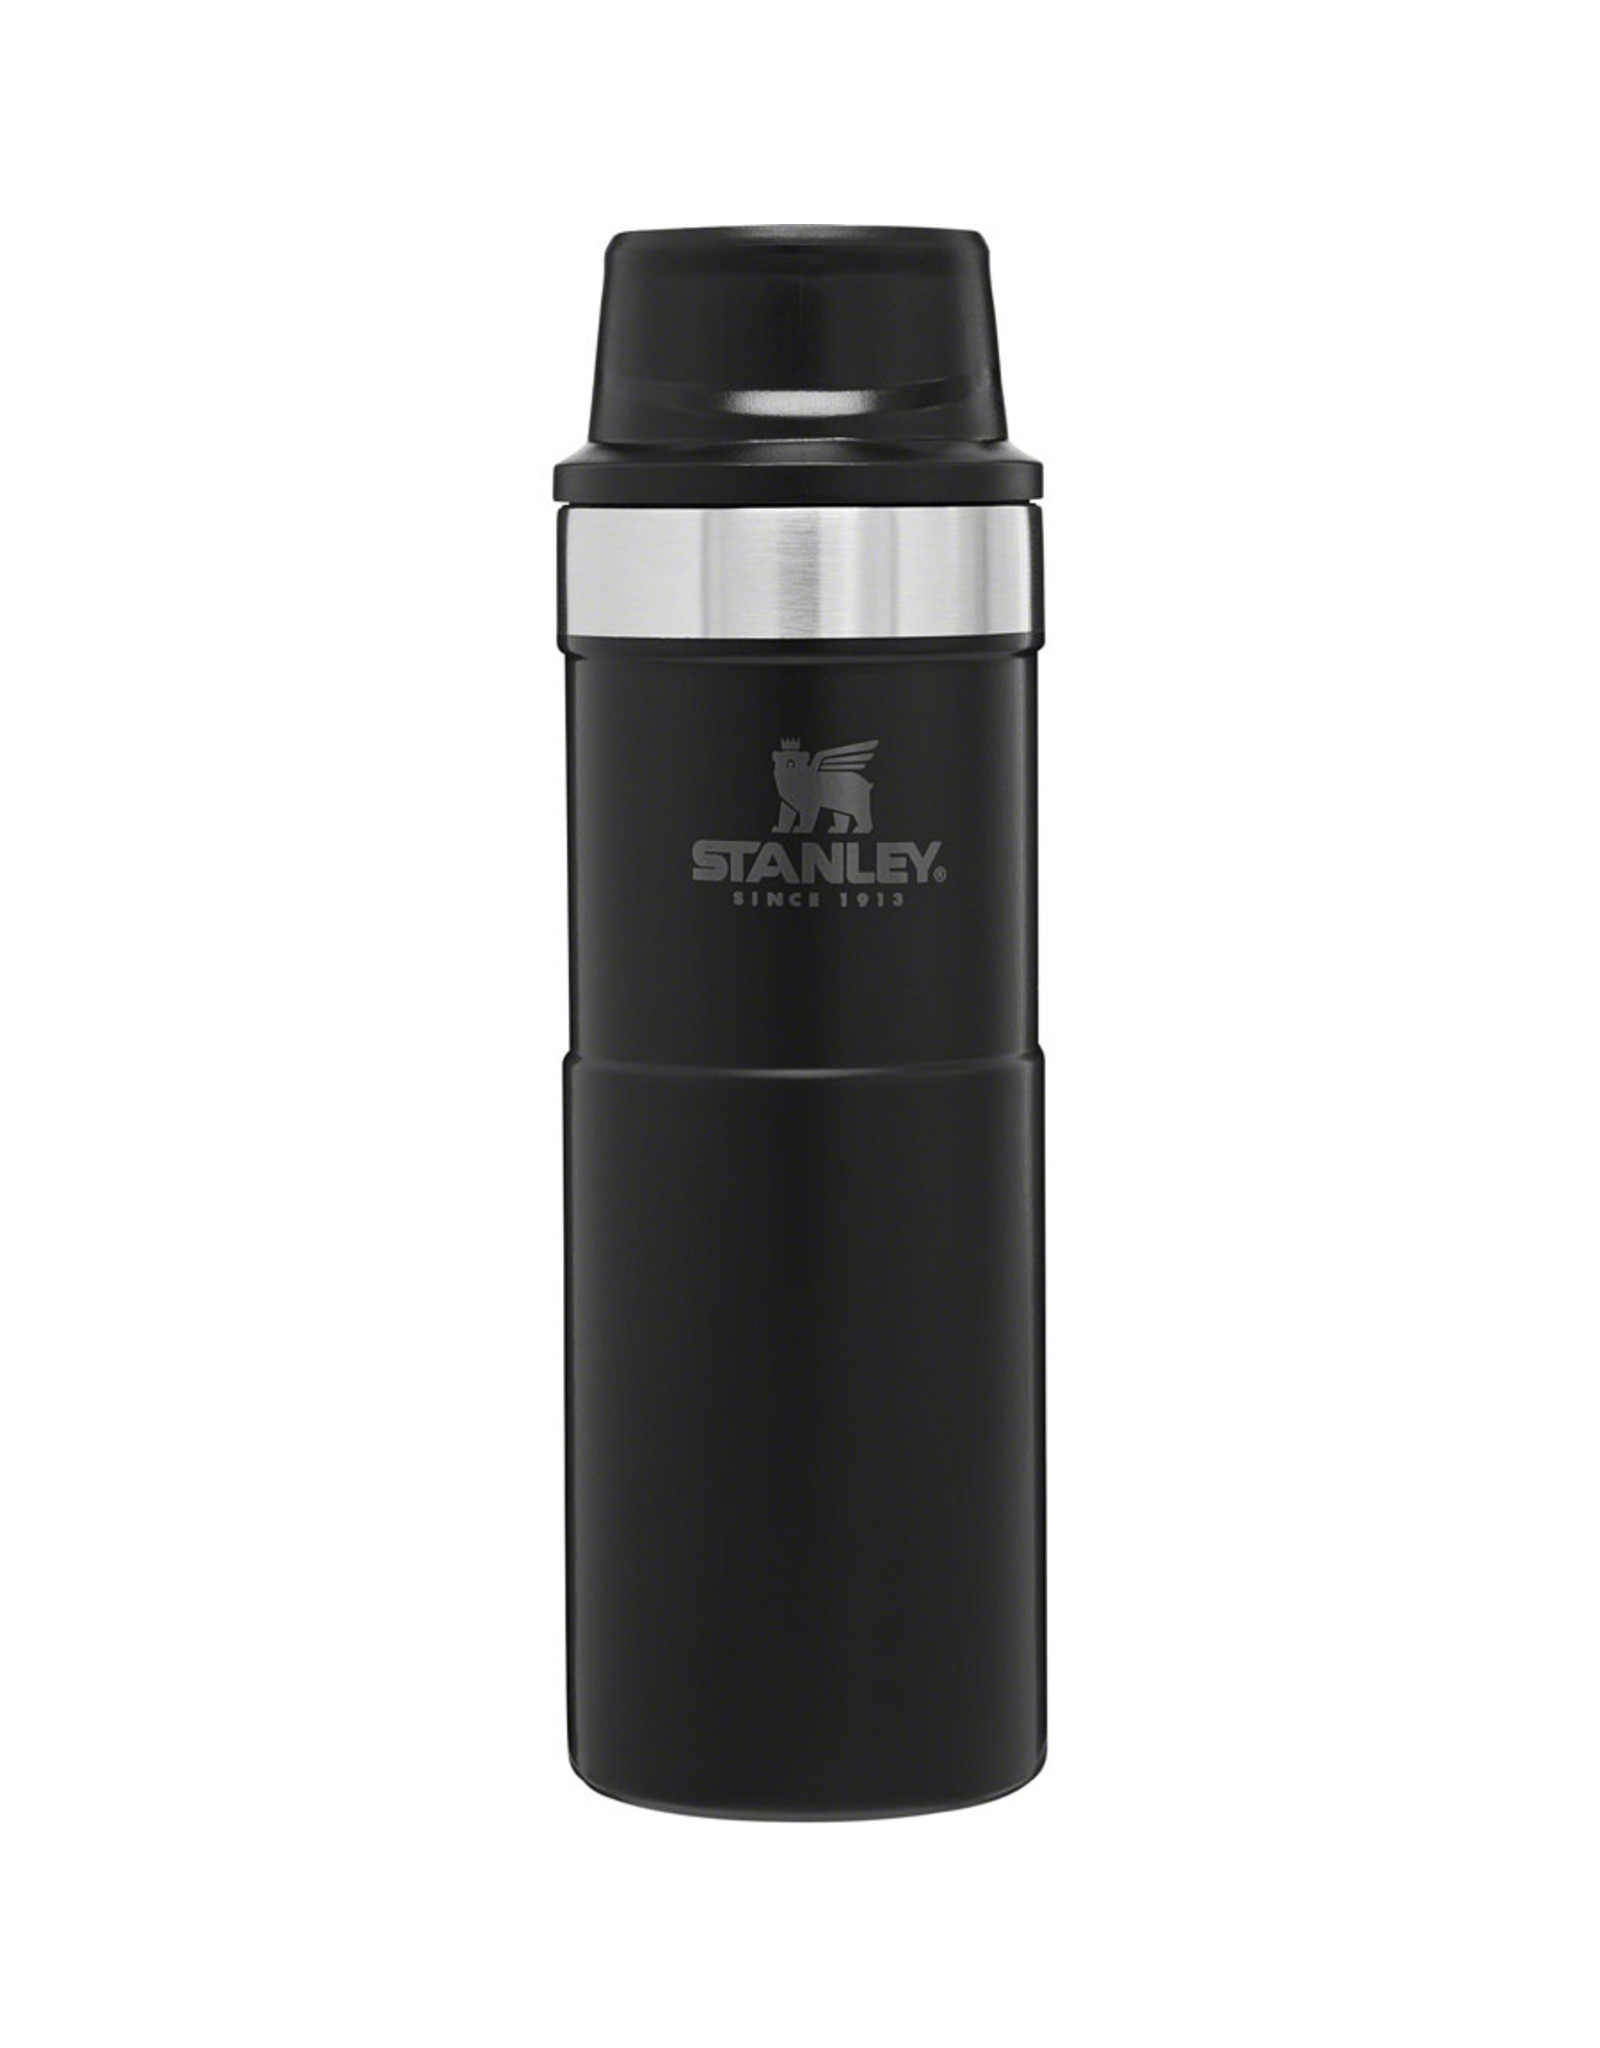 Stanley Classic Trigger-Action Travel Mug: Matte Black, 16oz